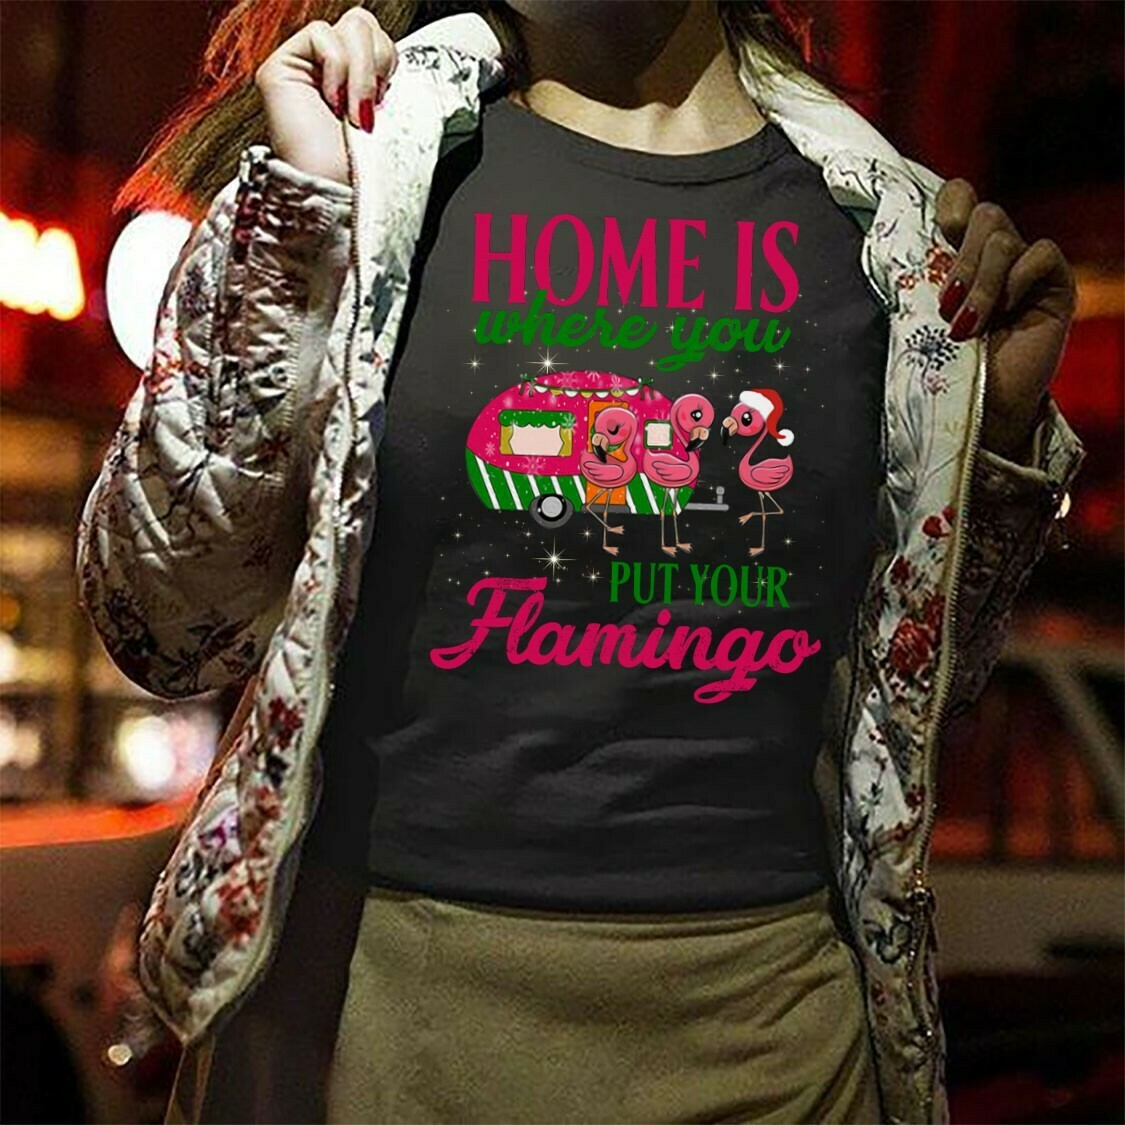 Flamingo Satan Home Is Where You Put Your Flamingo Gifts For Lovers Christmas Camper Noel Family Vacation Team Party T-Shirt Long Sleeve Sweatshirt Hoodie Jolly Family Gifts